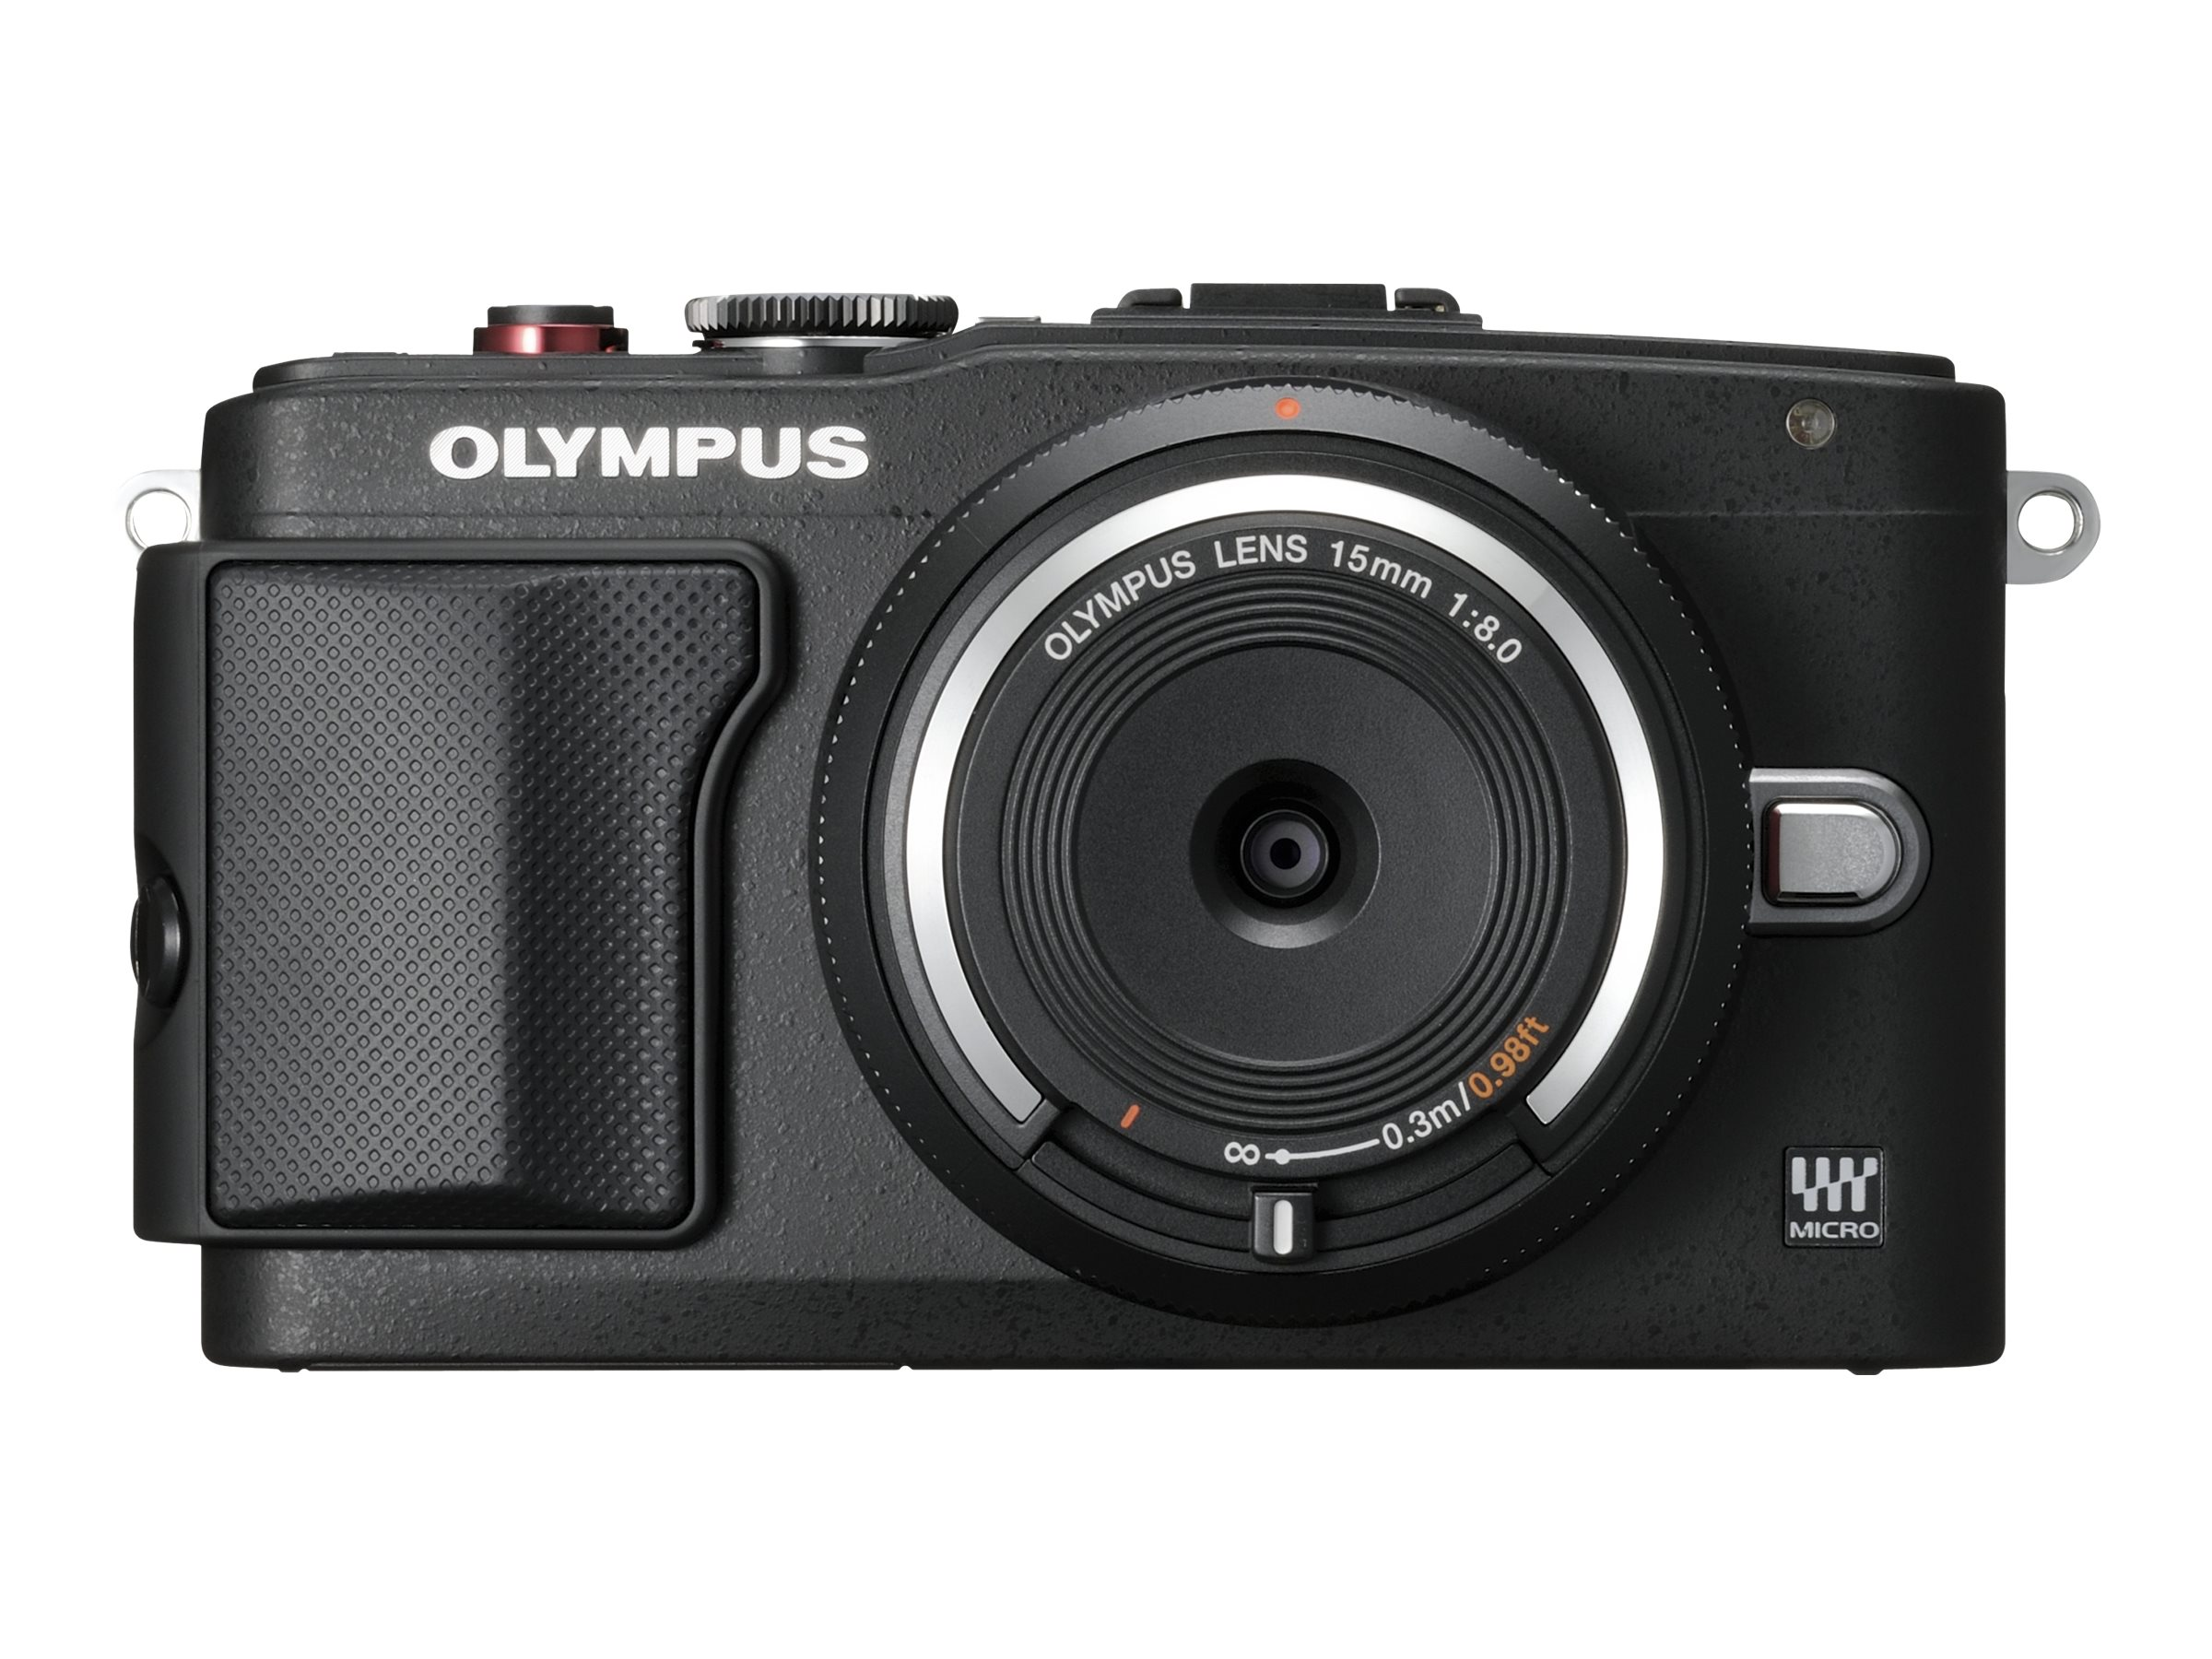 Olympus E-PL6 Mirrorless Digital Camera with 14-42mm f 3.5 II Lens, Black, V205051BU000